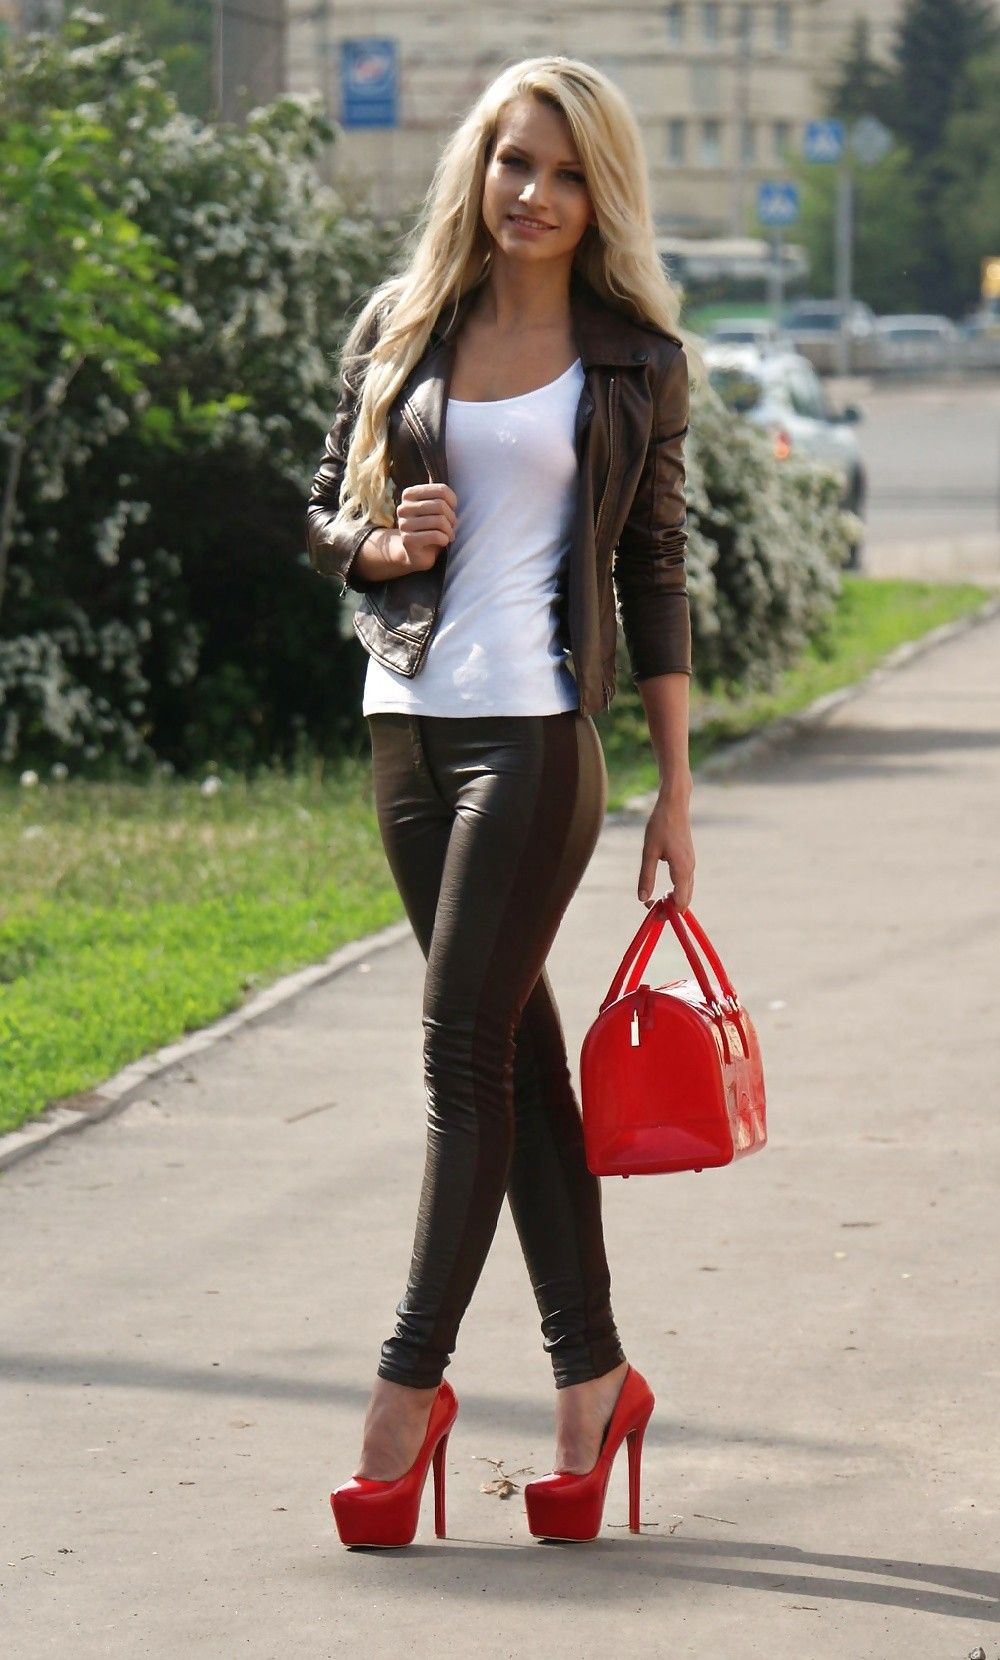 Leather pants and a jacket with white shirt and red heels. Would like the shoes without the platform heel and lose the huge bag though.